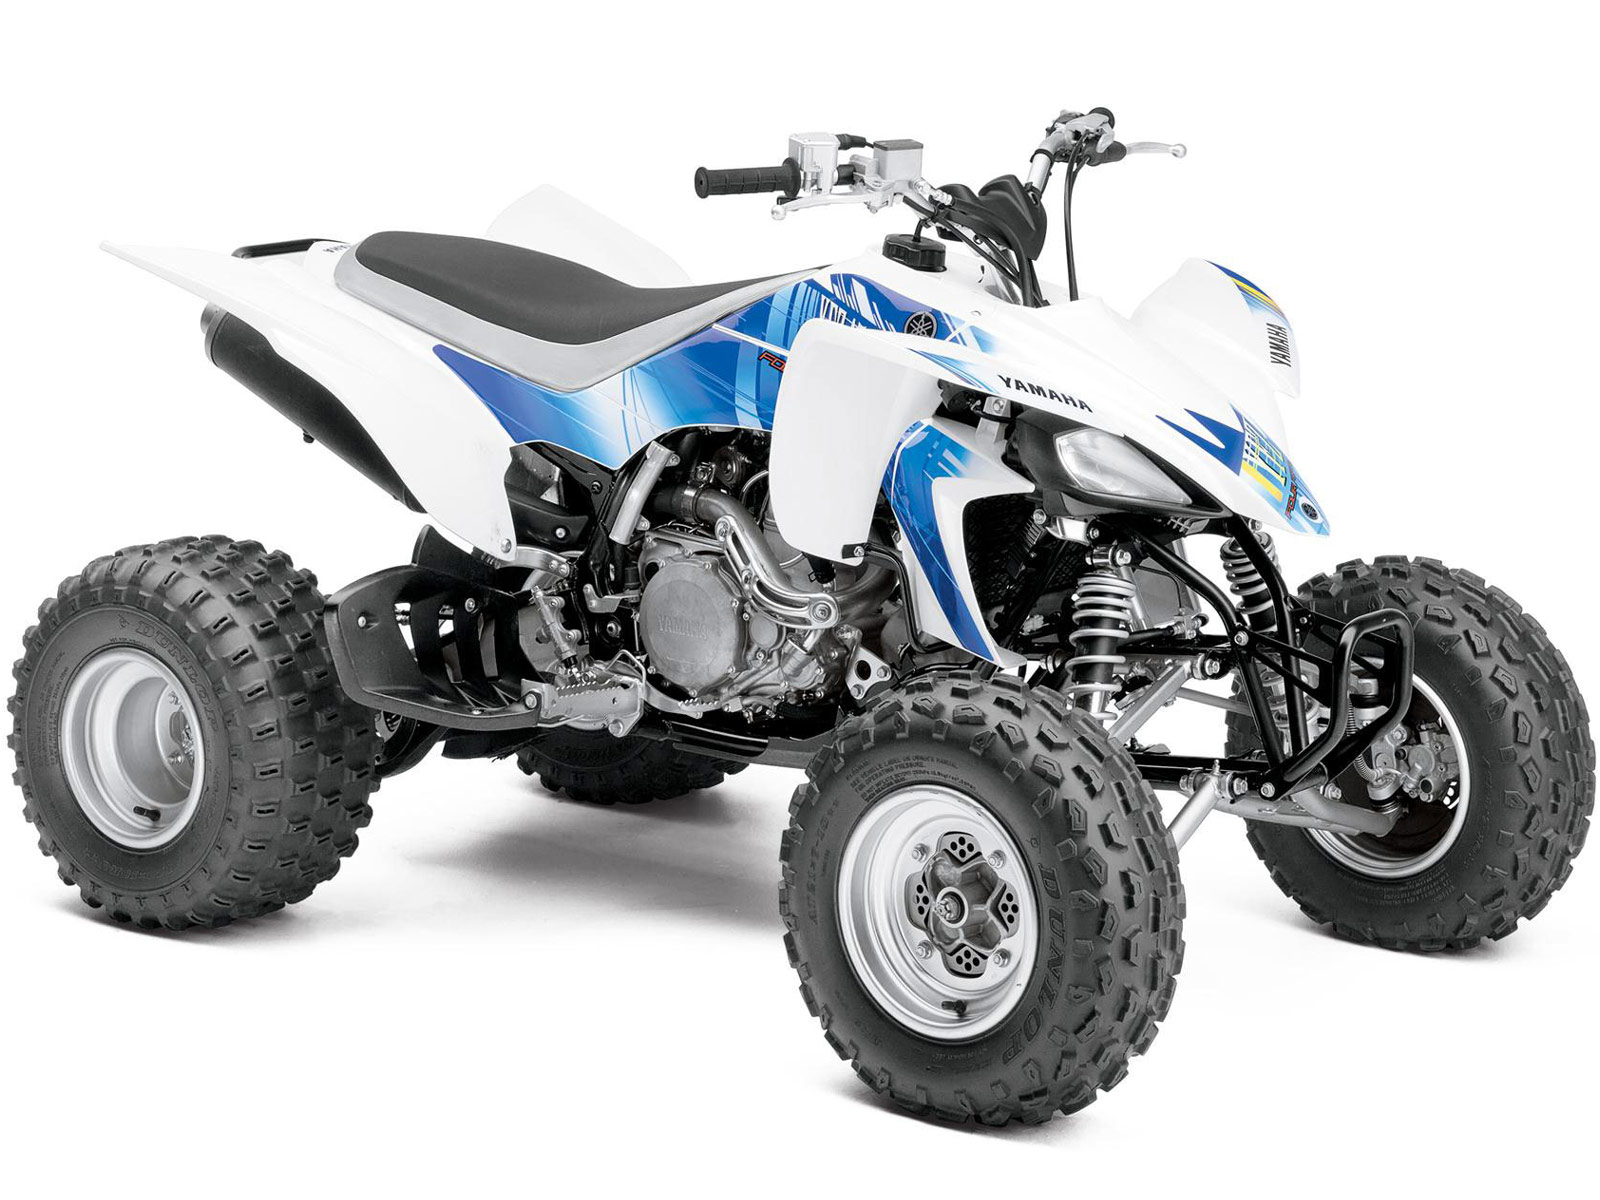 raptor yfz450 2013 yamaha atv pictures specifications. Black Bedroom Furniture Sets. Home Design Ideas